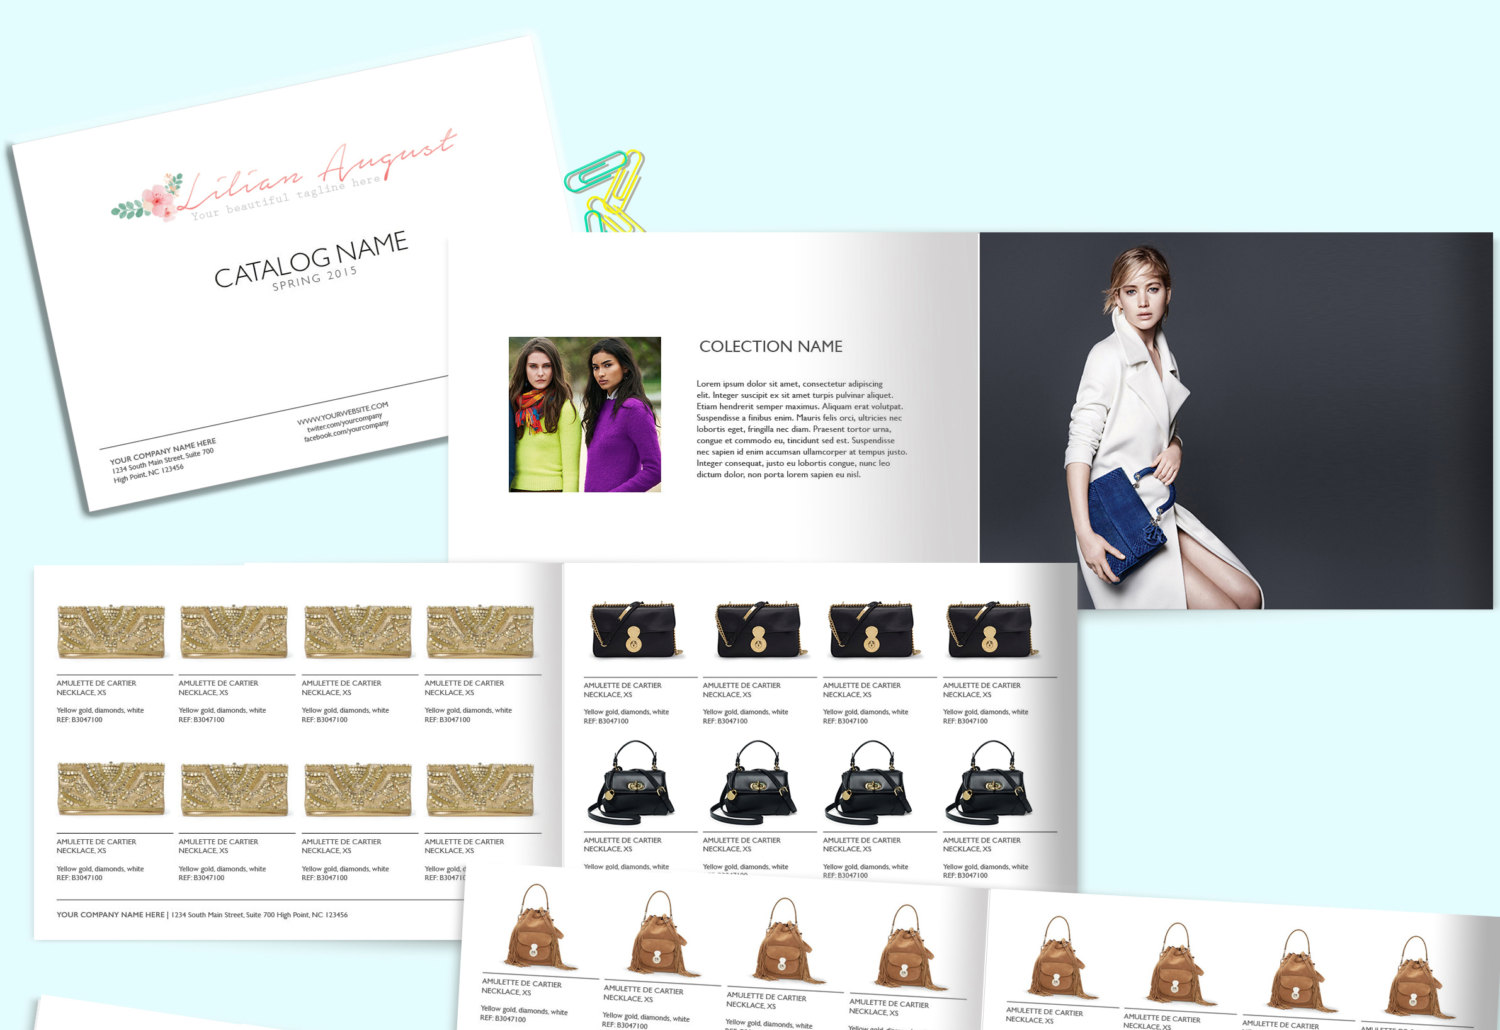 Pretty 10 Best Resume Designs Thin 100 Free Resume Builder And Download Flat 100 Template 18th Birthday Invitations Templates Young 2 Binder Spine Template Bright2 Weeks Notice Template Wholesale Catalog Template, Product Catalog, InDesign Catalogue ..